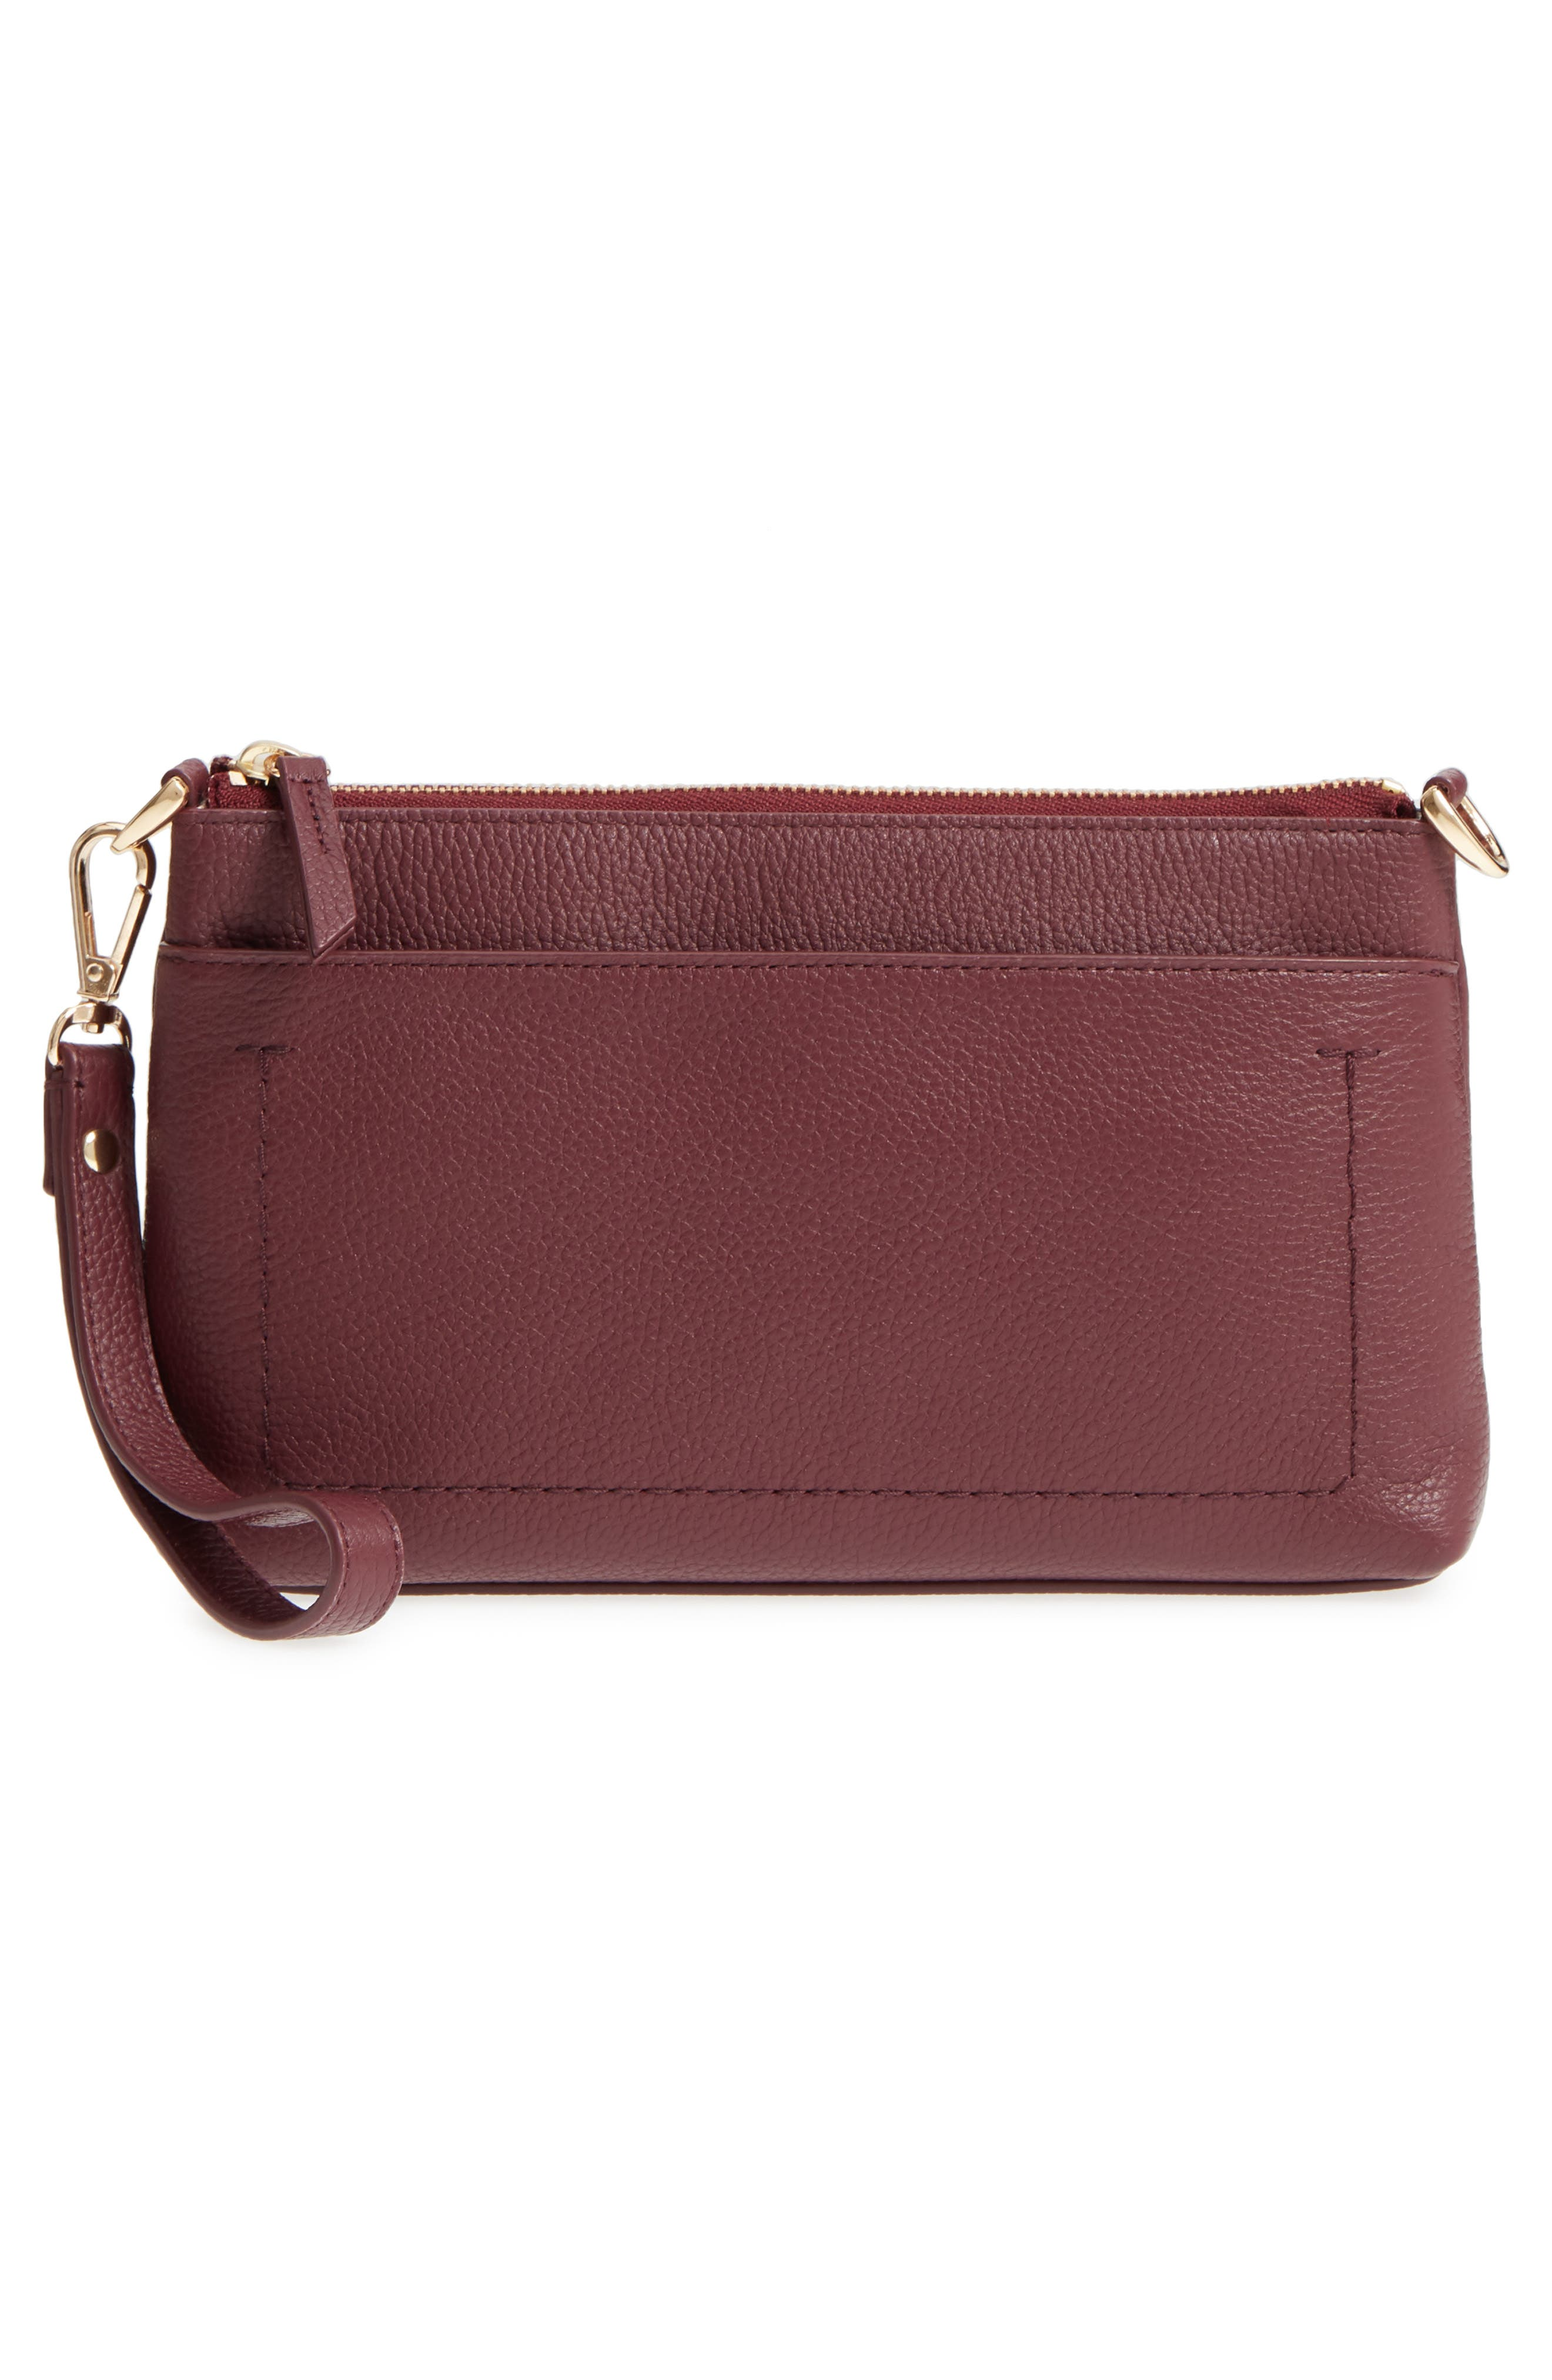 Brixton Convertible Leather Crossbody Bag with Pop-Out Card Holder,                             Alternate thumbnail 3, color,                             Burgundy London